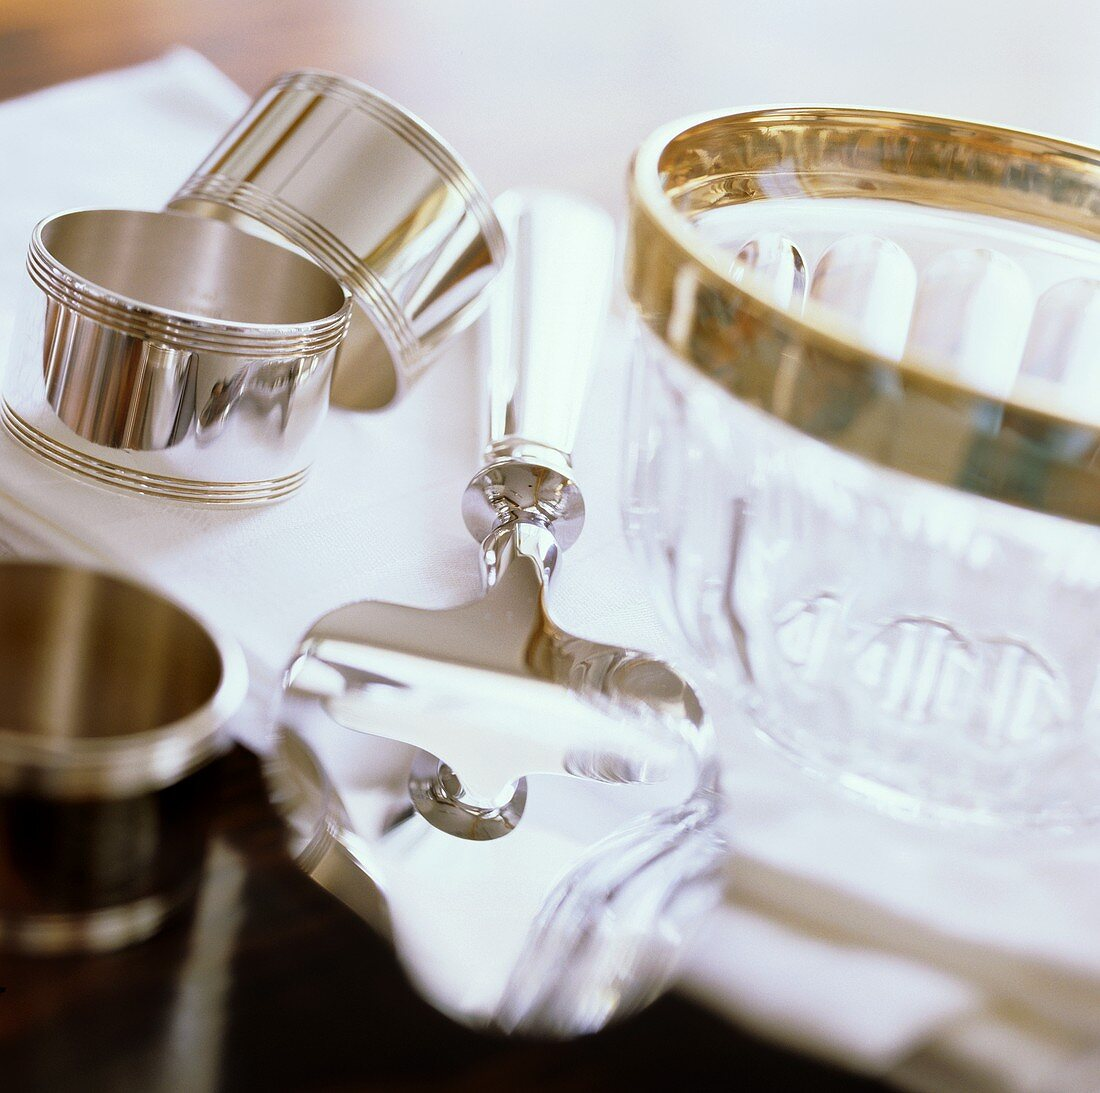 Silver truffle plane, glass bowl and napkin rings